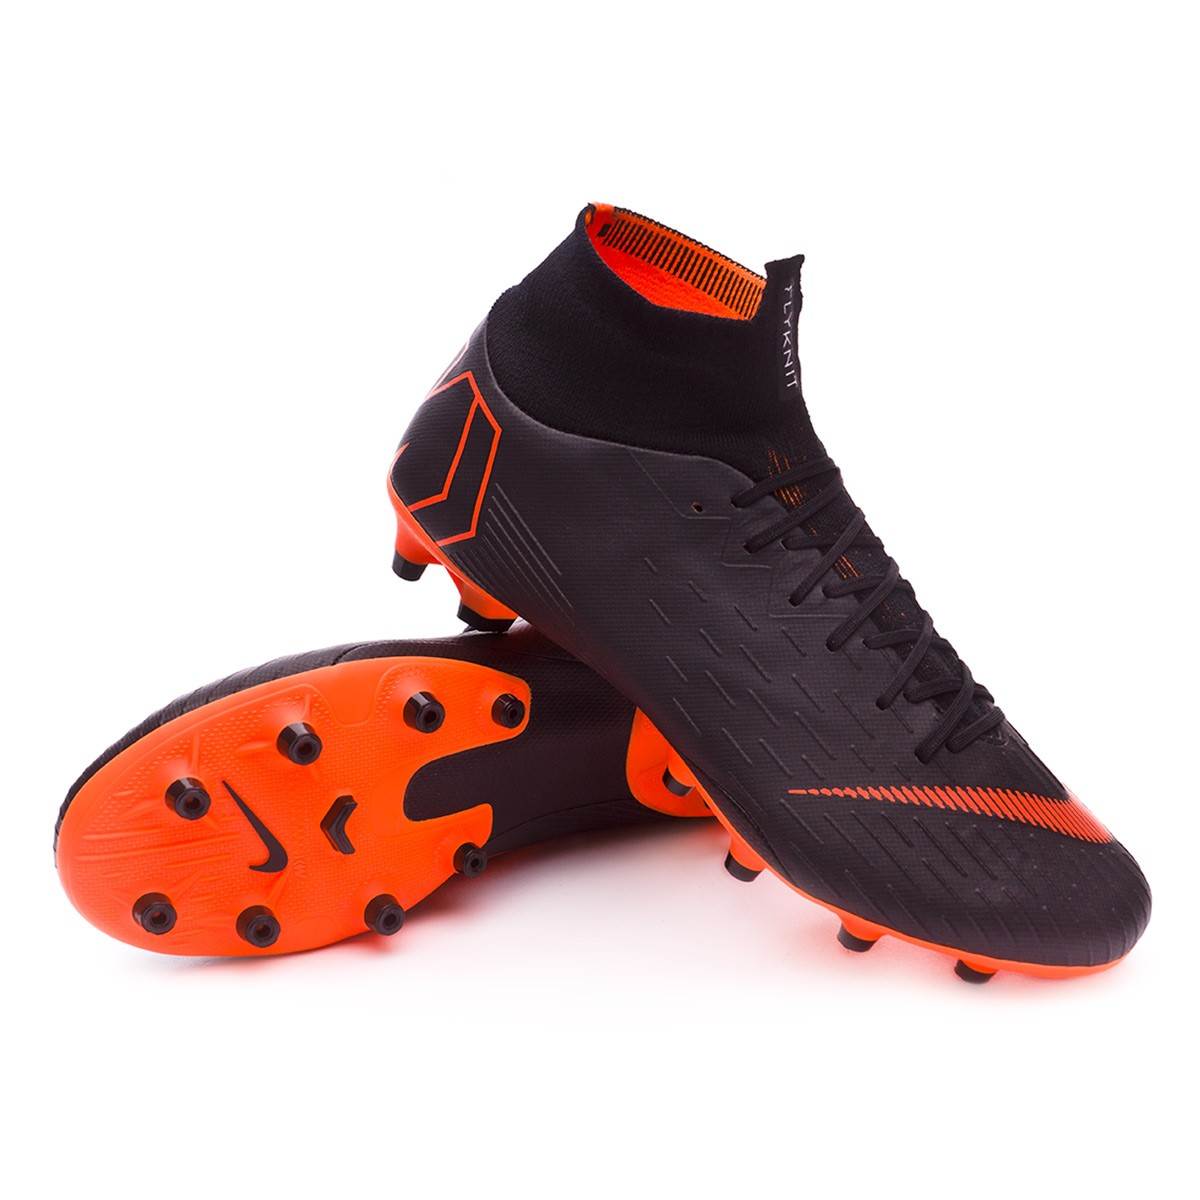 various colors 79133 b6a76 Nike Mercurial Superfly VI Pro AG-Pro Football Boots. Black-Total orange-White  ...